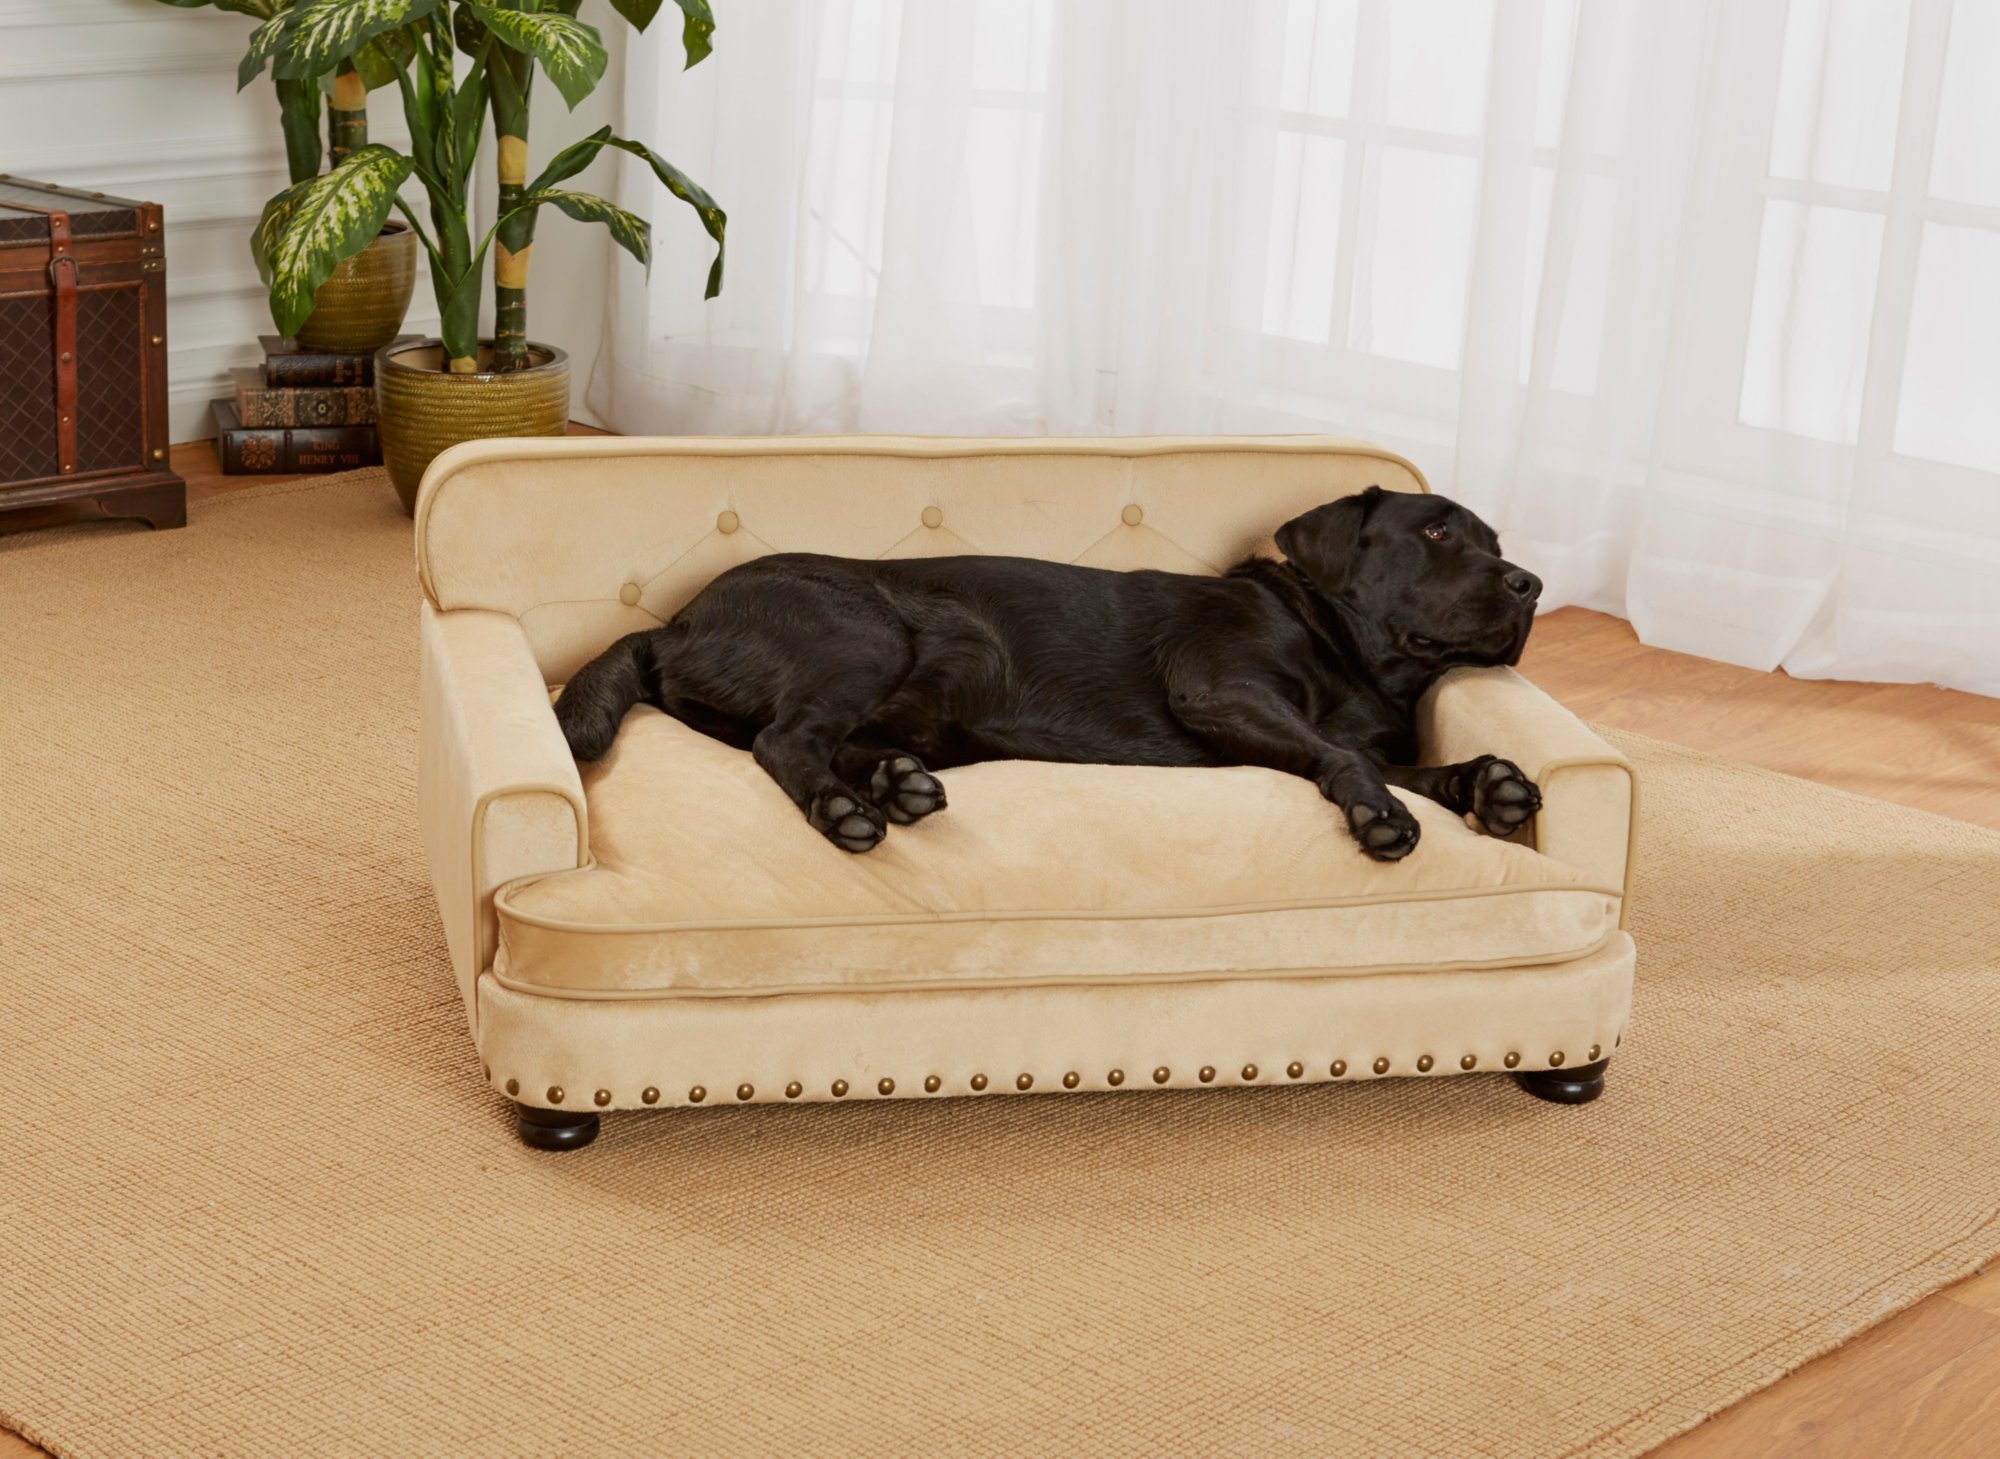 Sofa Pet Sofa Dog Bed Grandin Road TheSofa : 2602697 center 1 from thesofa.droogkast.com size 2000 x 1459 jpeg 404kB